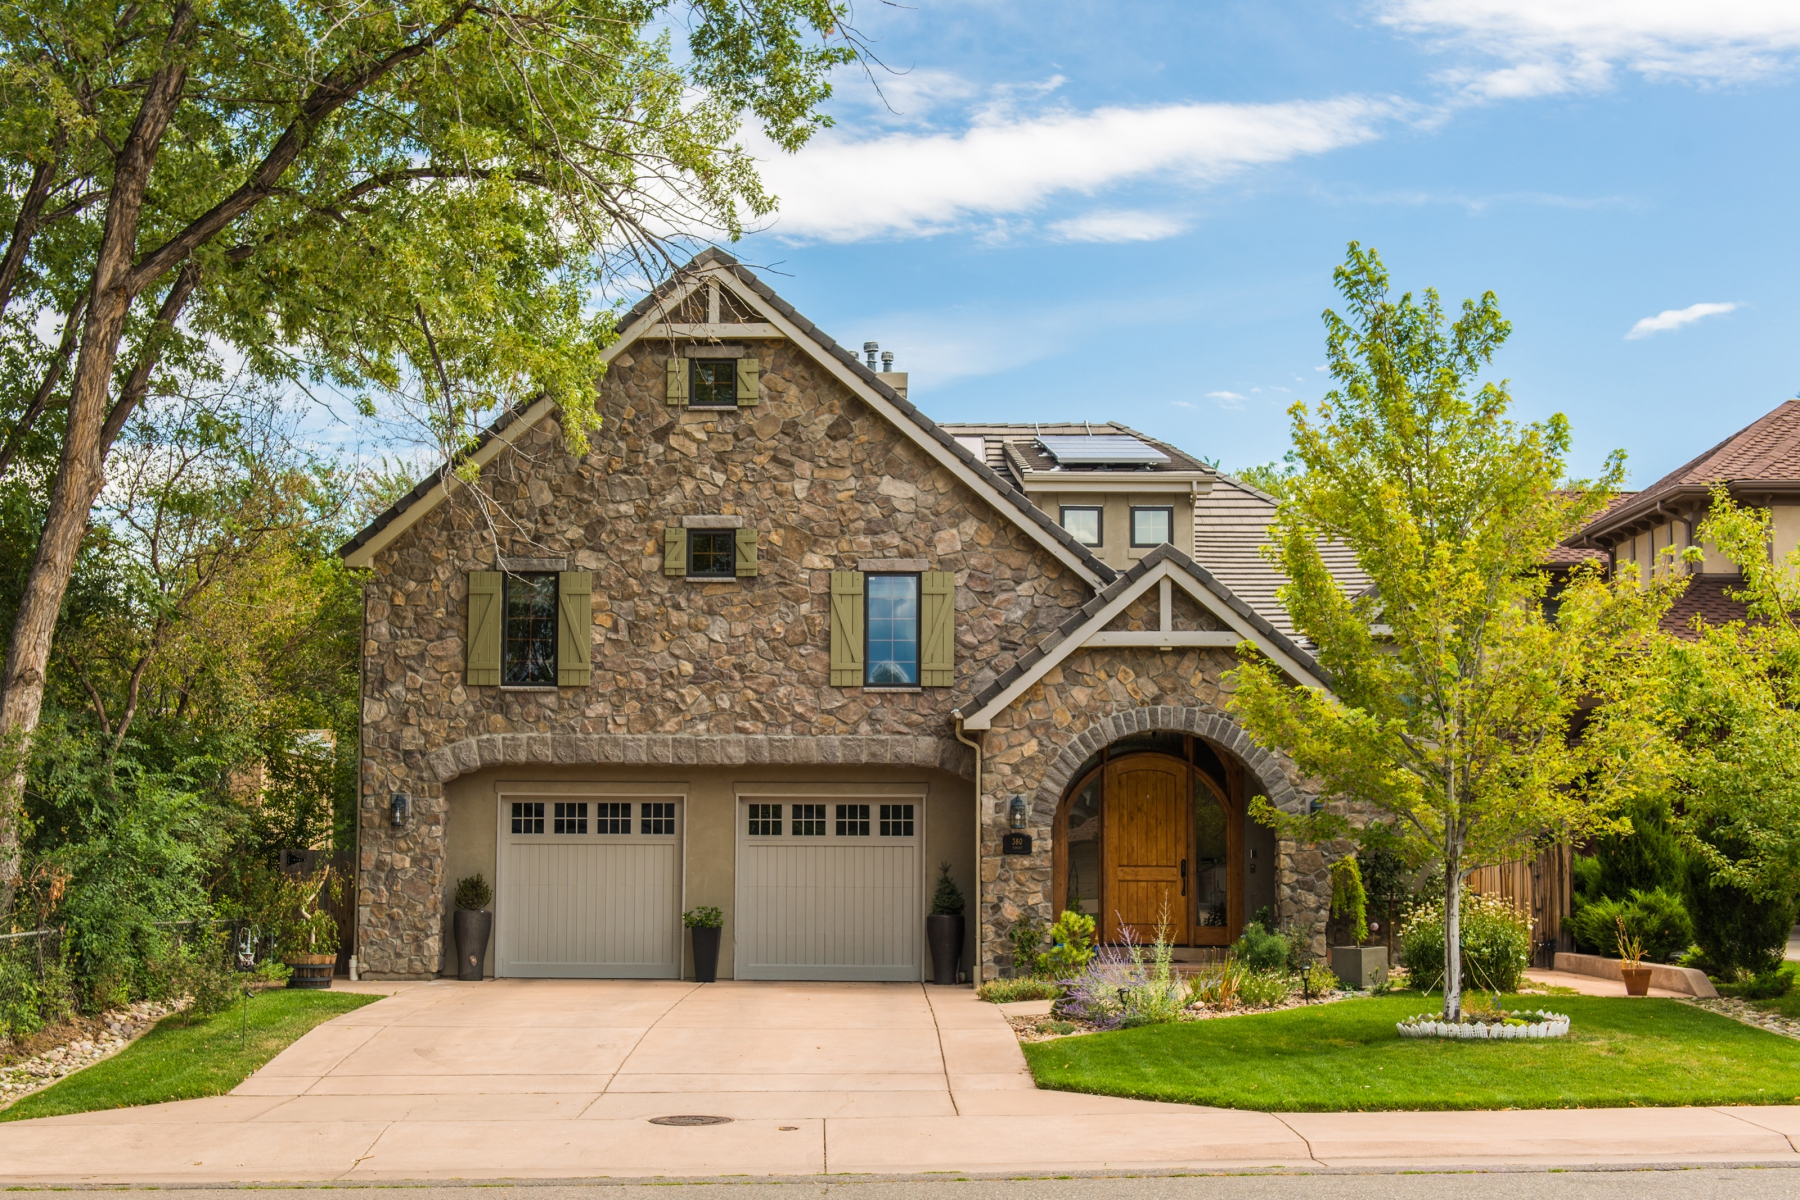 Single Family Home for Sale at Extraordinary living in Hilltop! 380 Forest Street Hilltop, Denver, Colorado 80220 United States